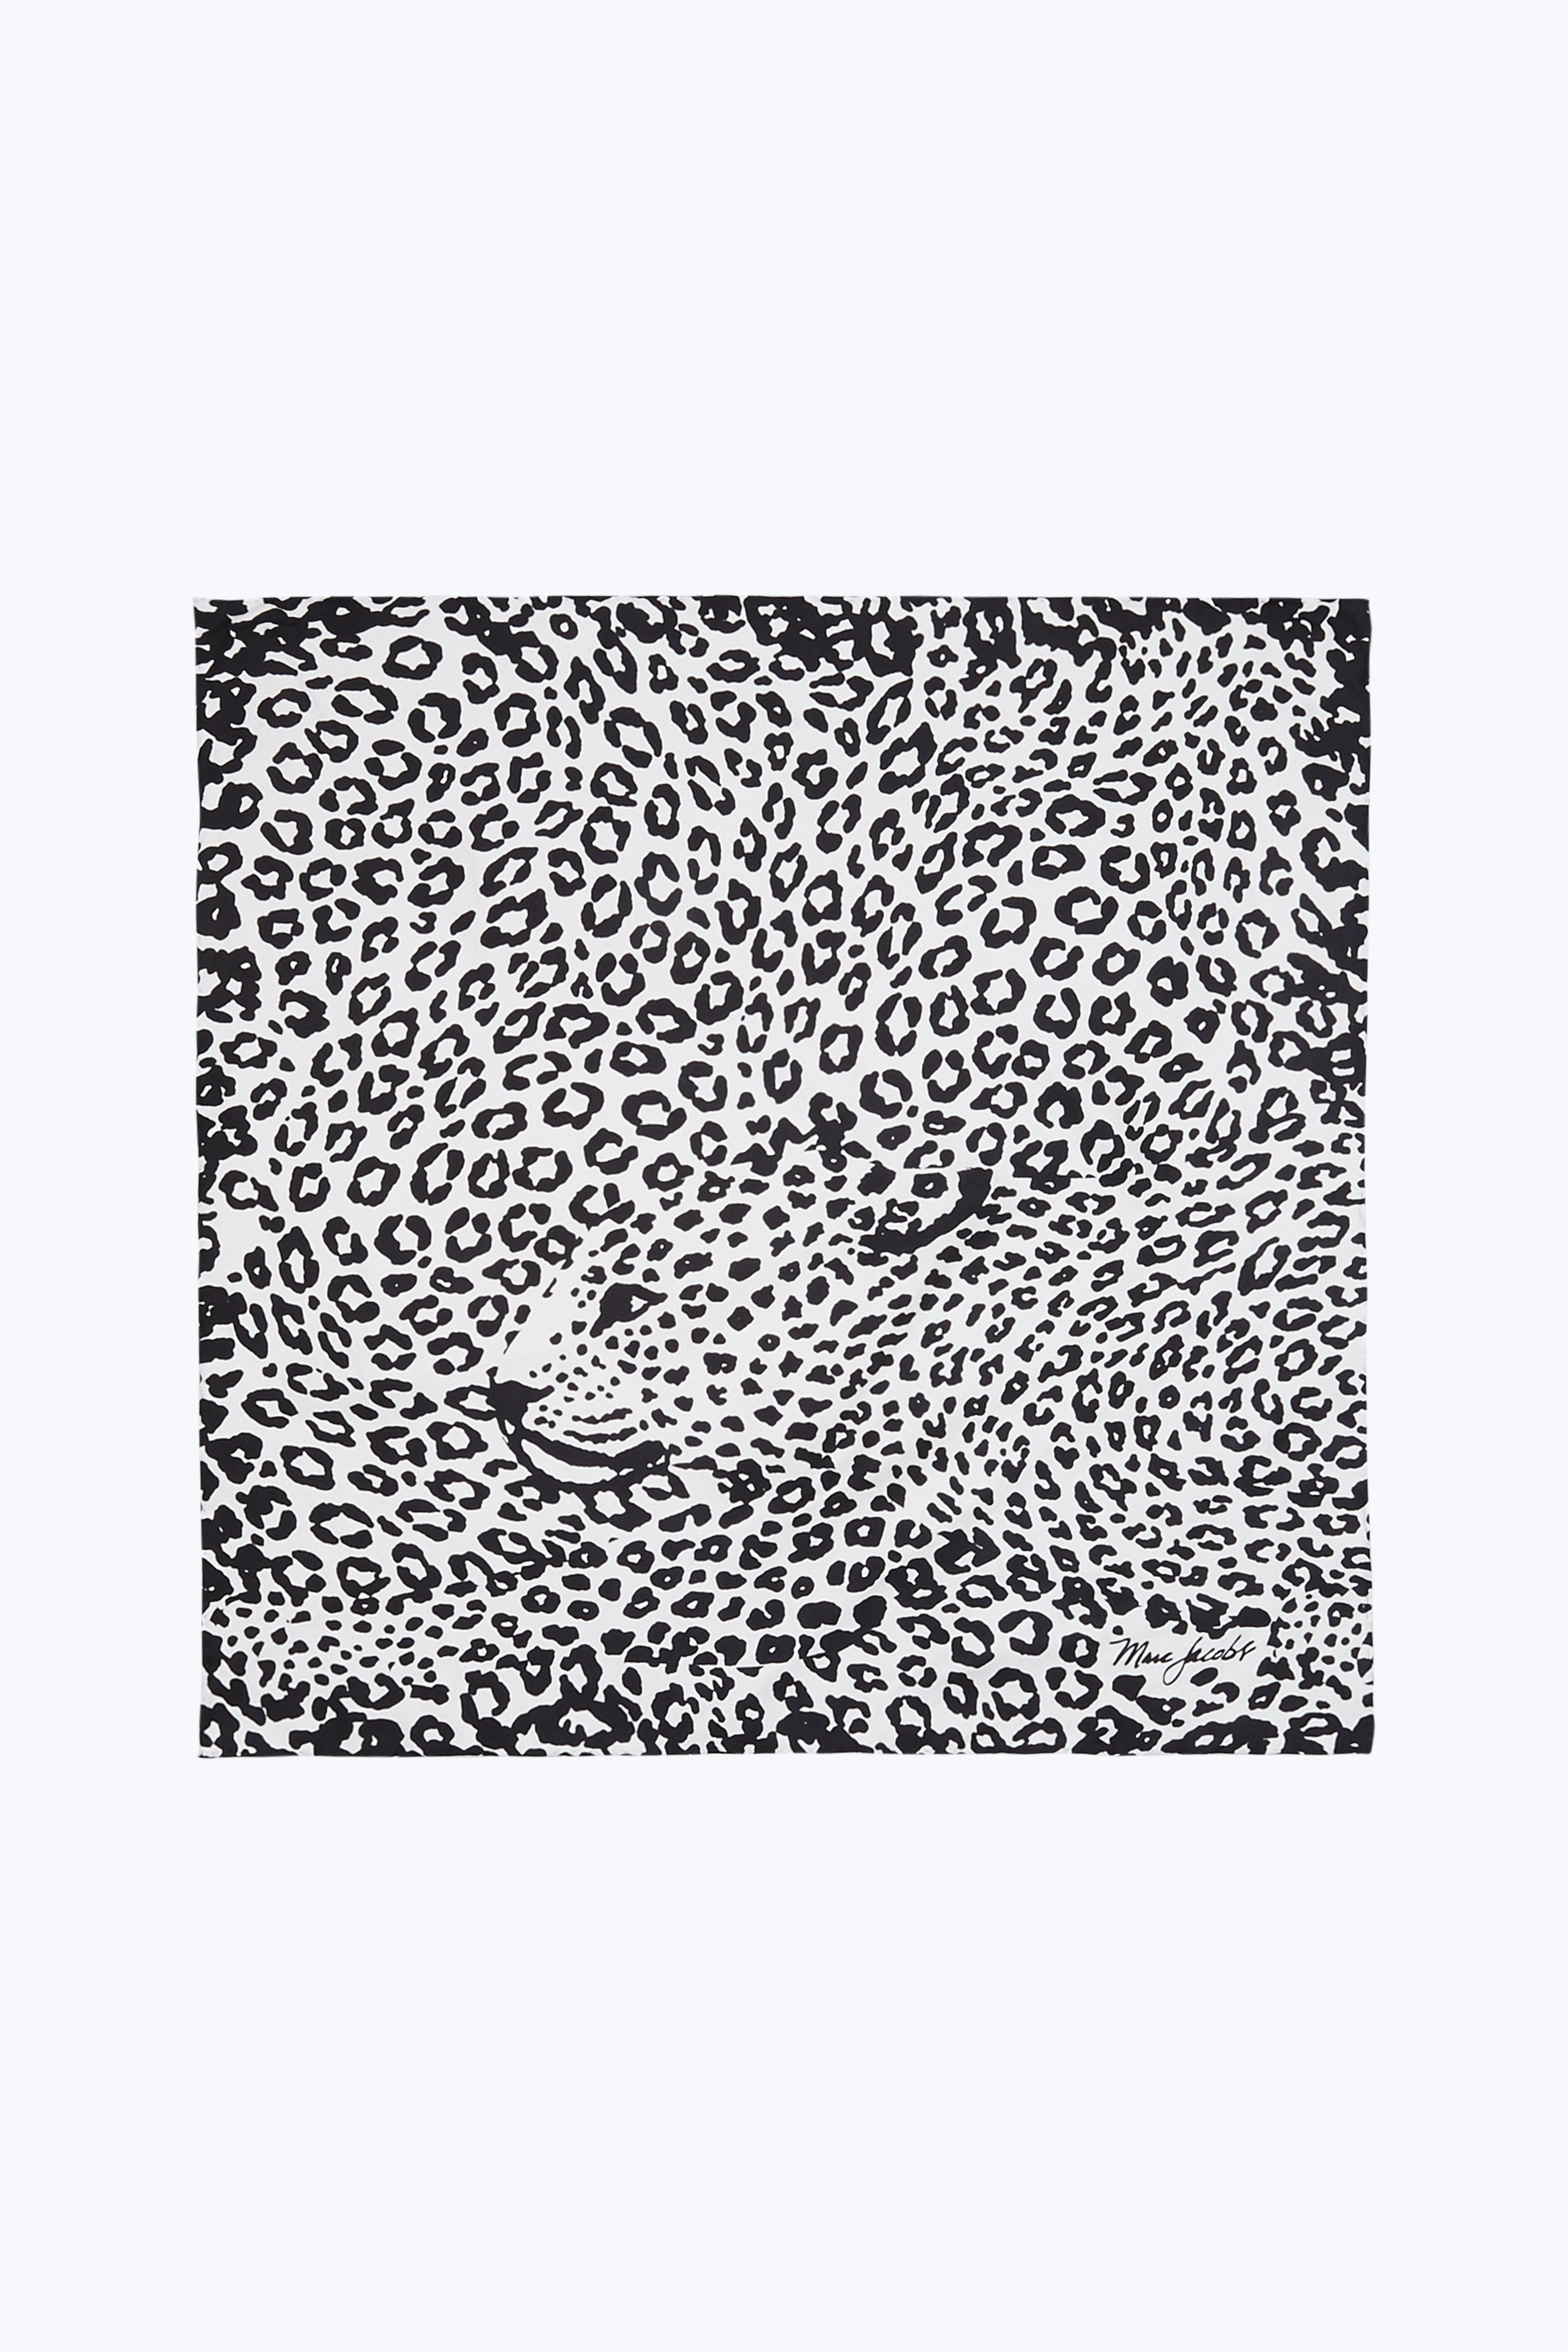 Marc Jacobs Leopard Square Scarf In Black/white